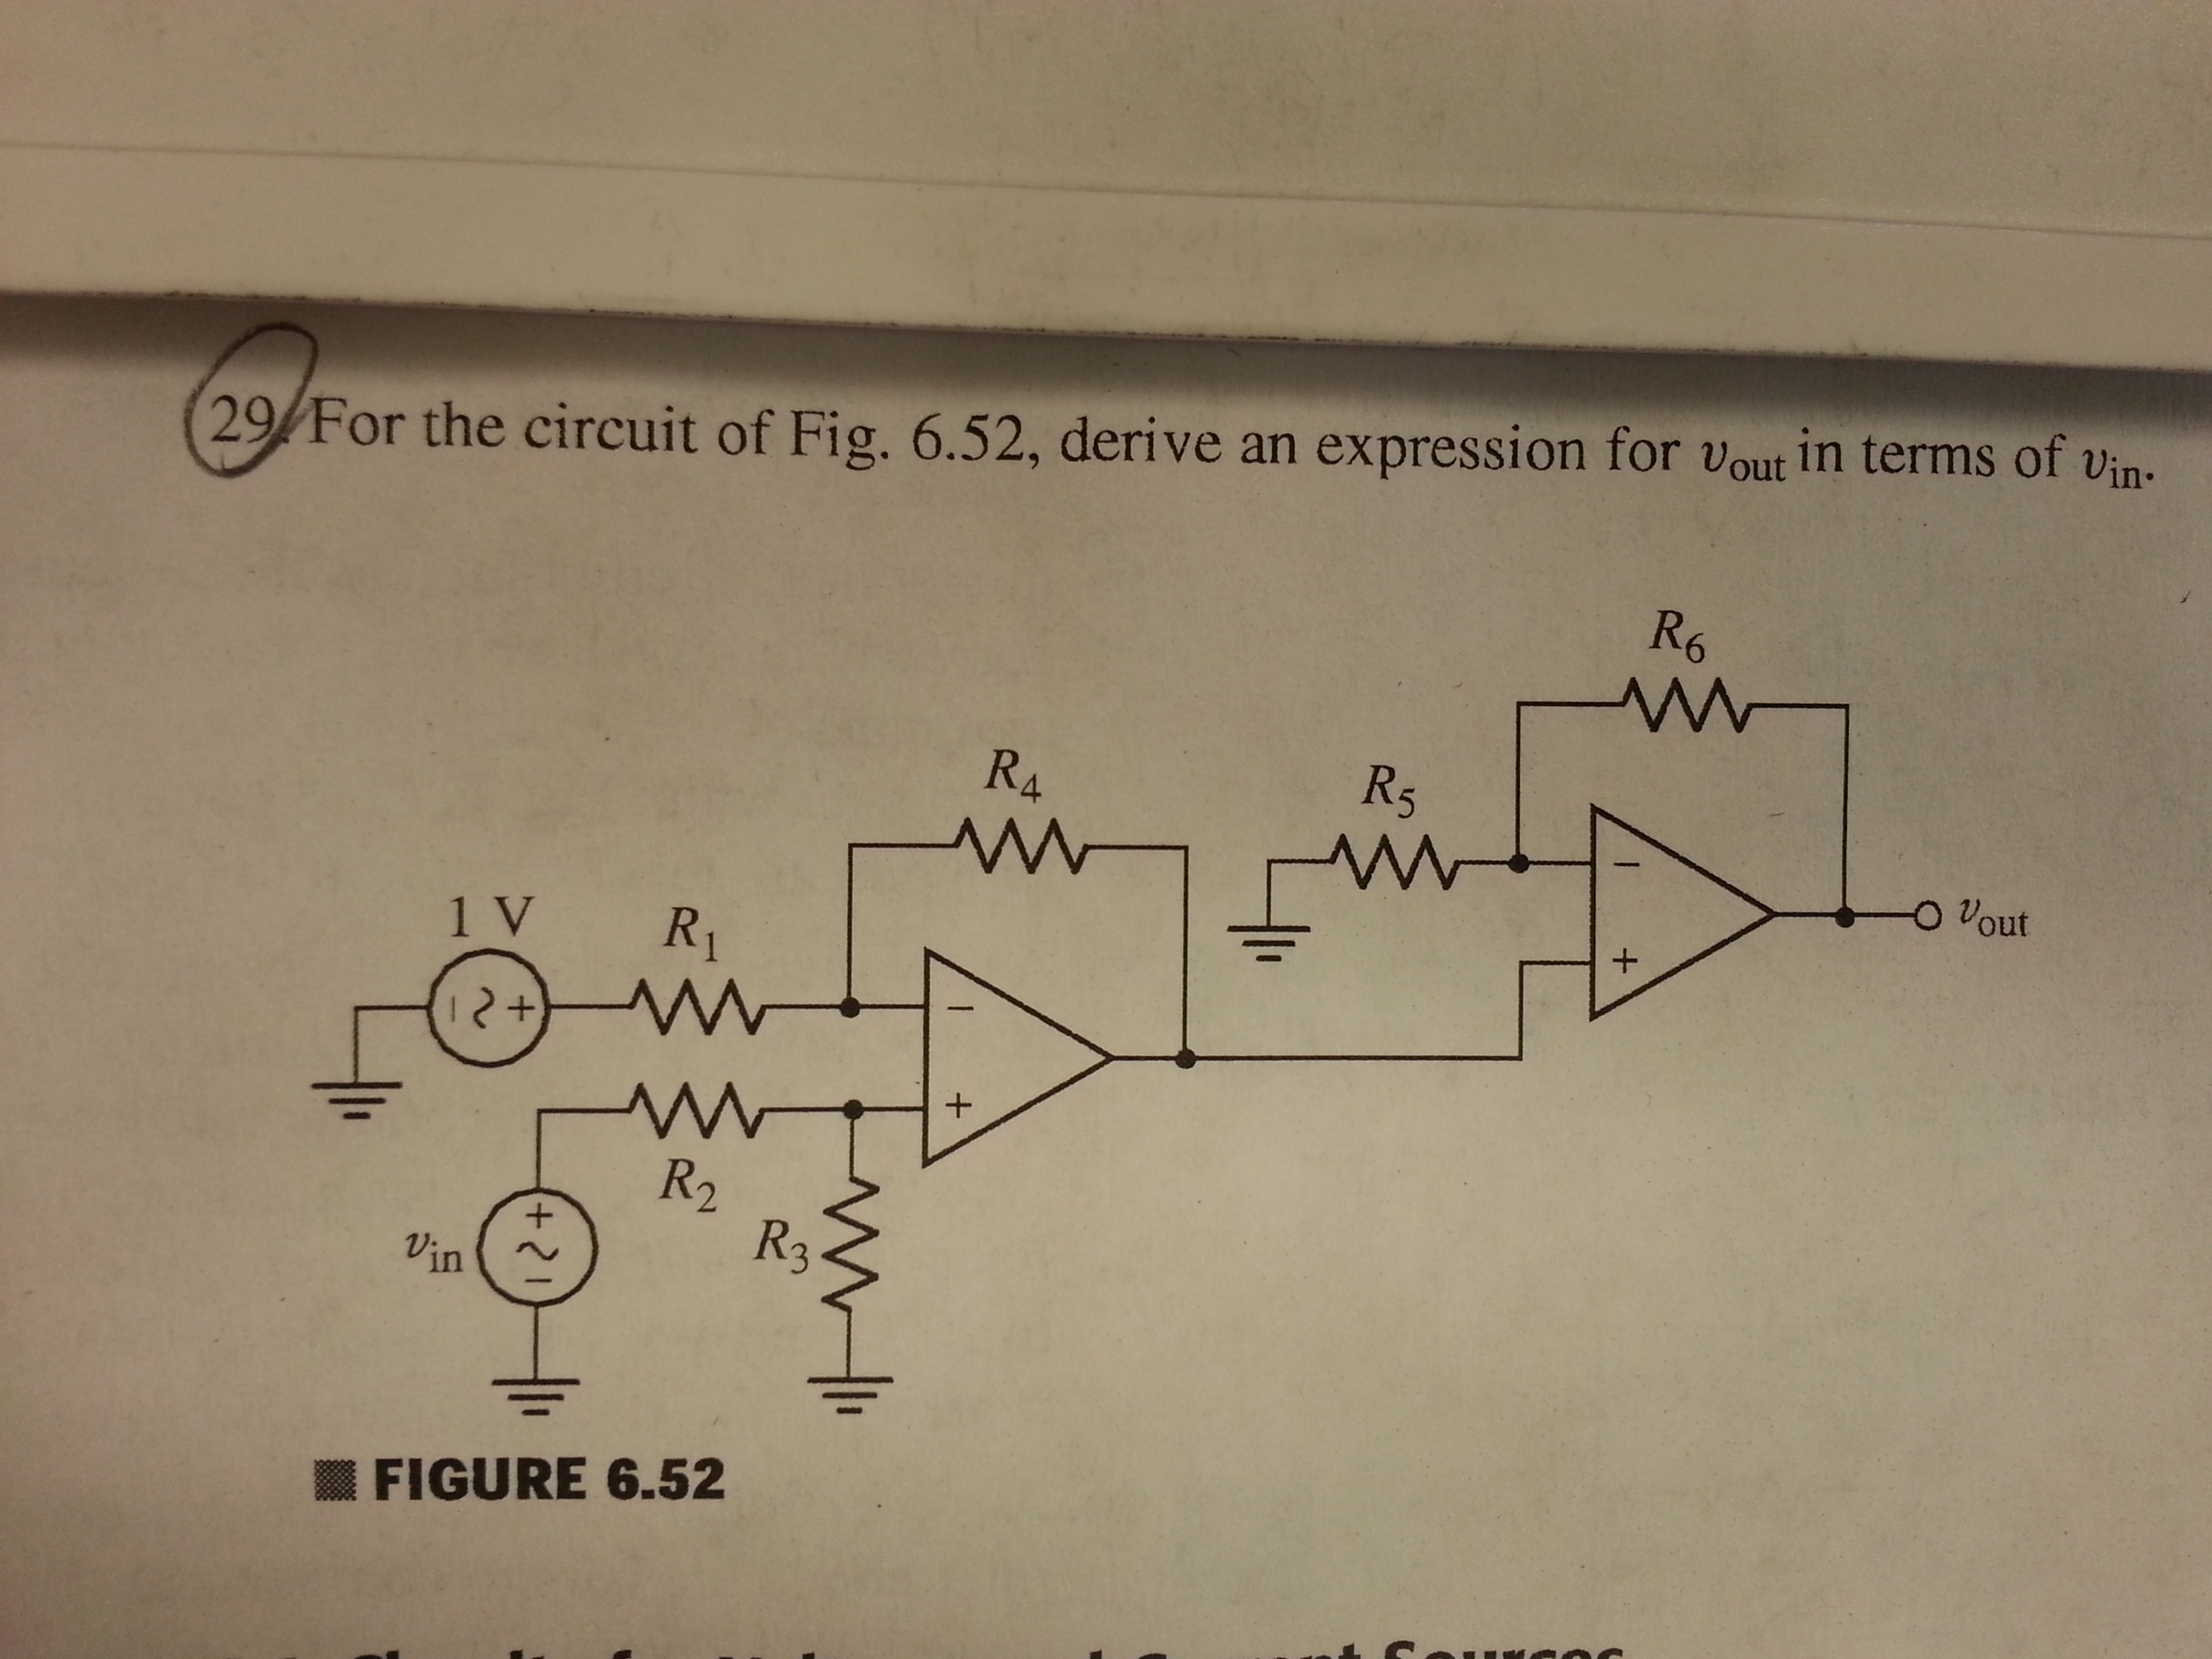 For the circuit of Fig. 6.52, derive an expression